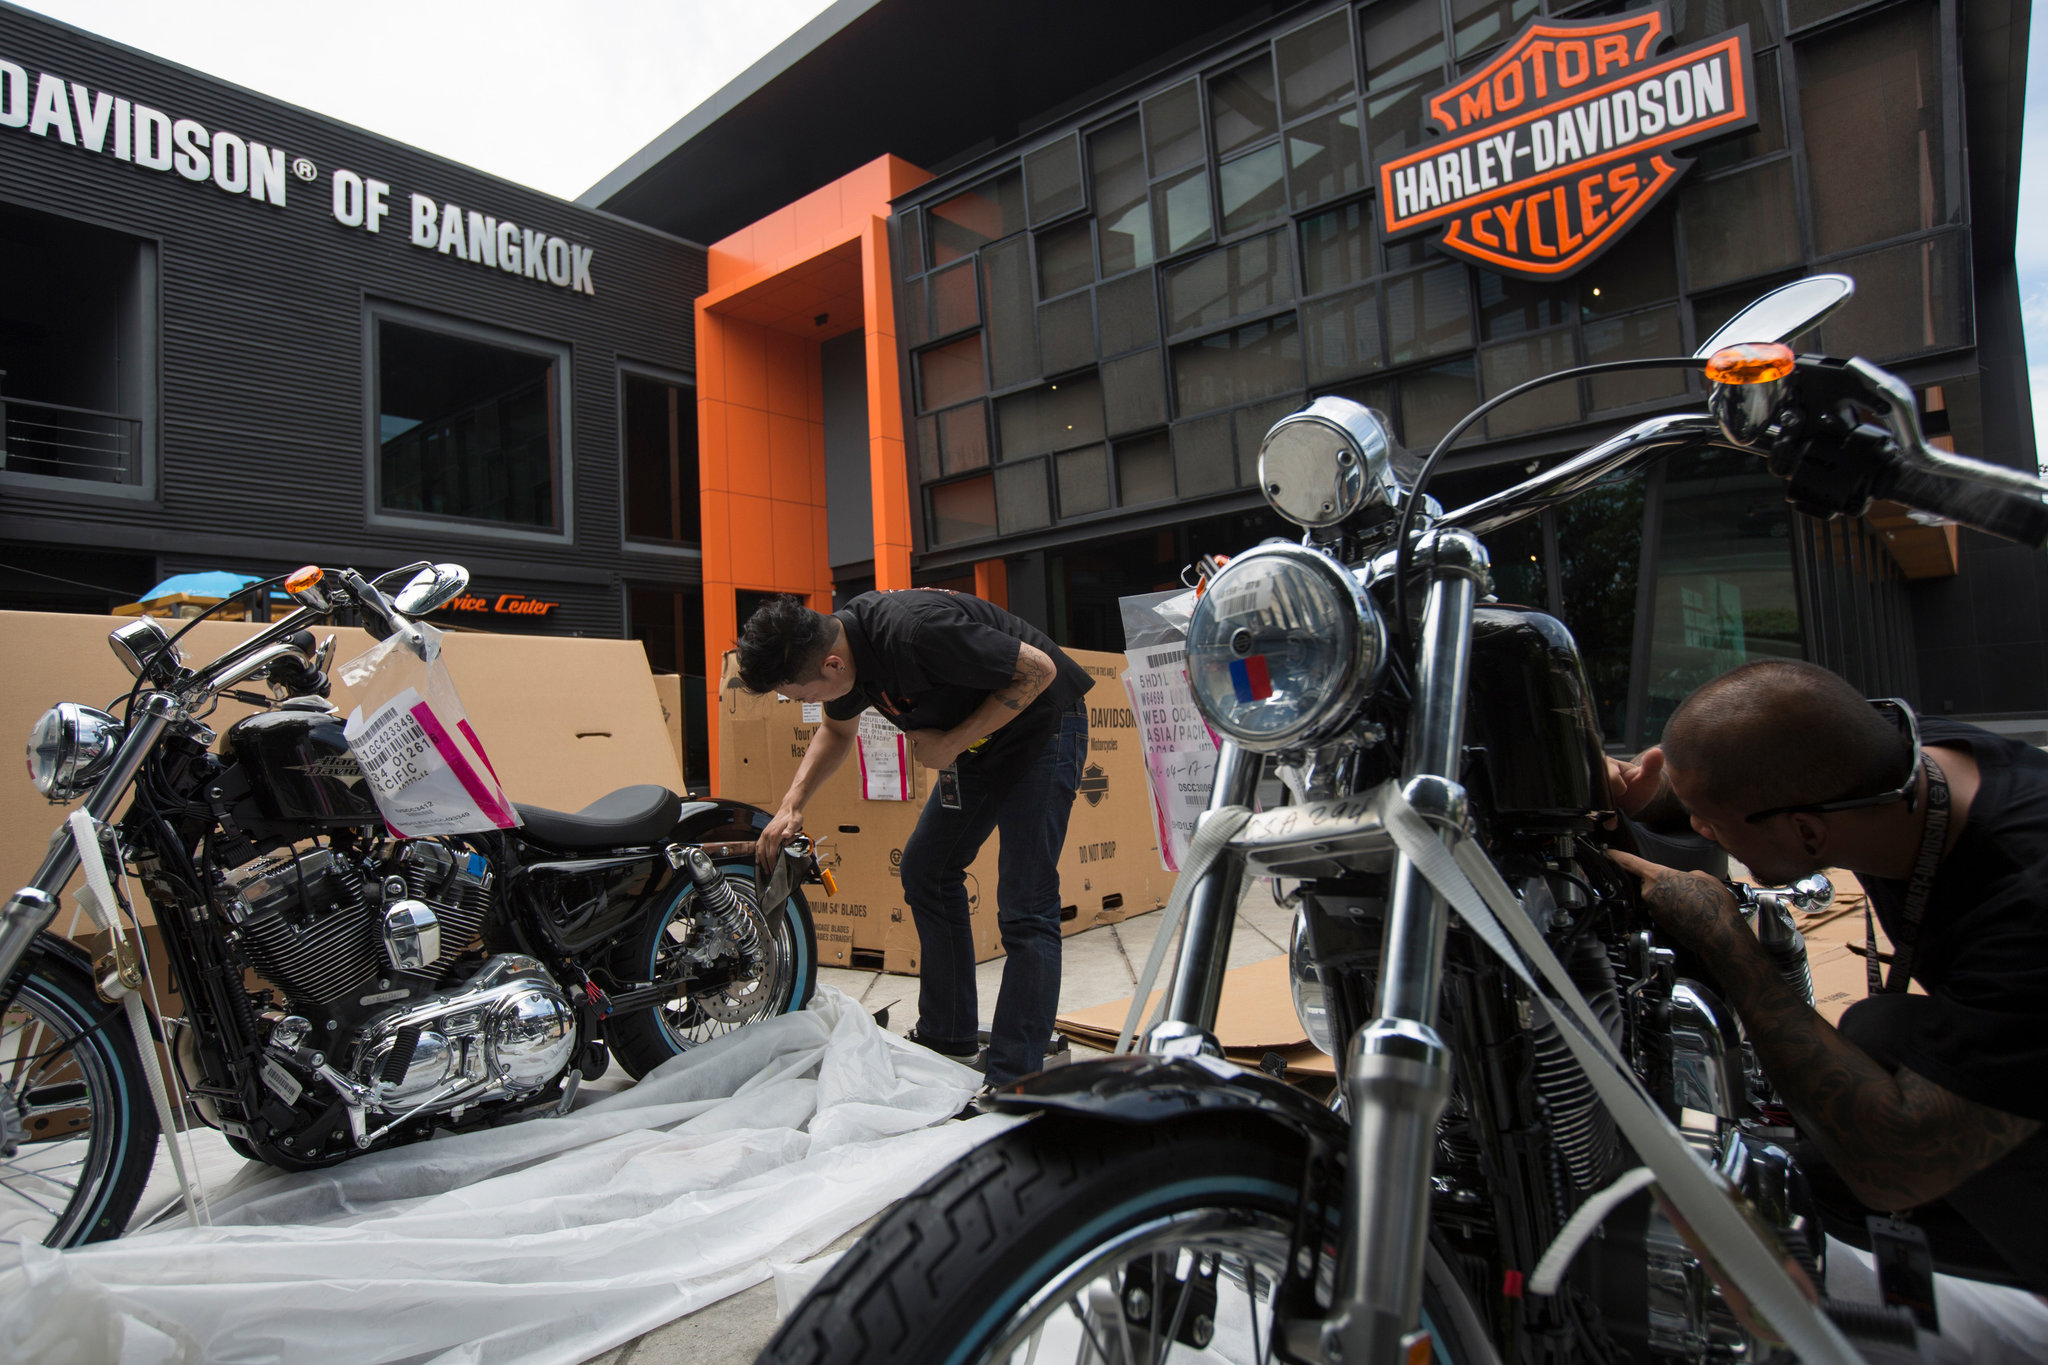 A view of H-D Dealership workers unwrapping new Harley Davidson bikes